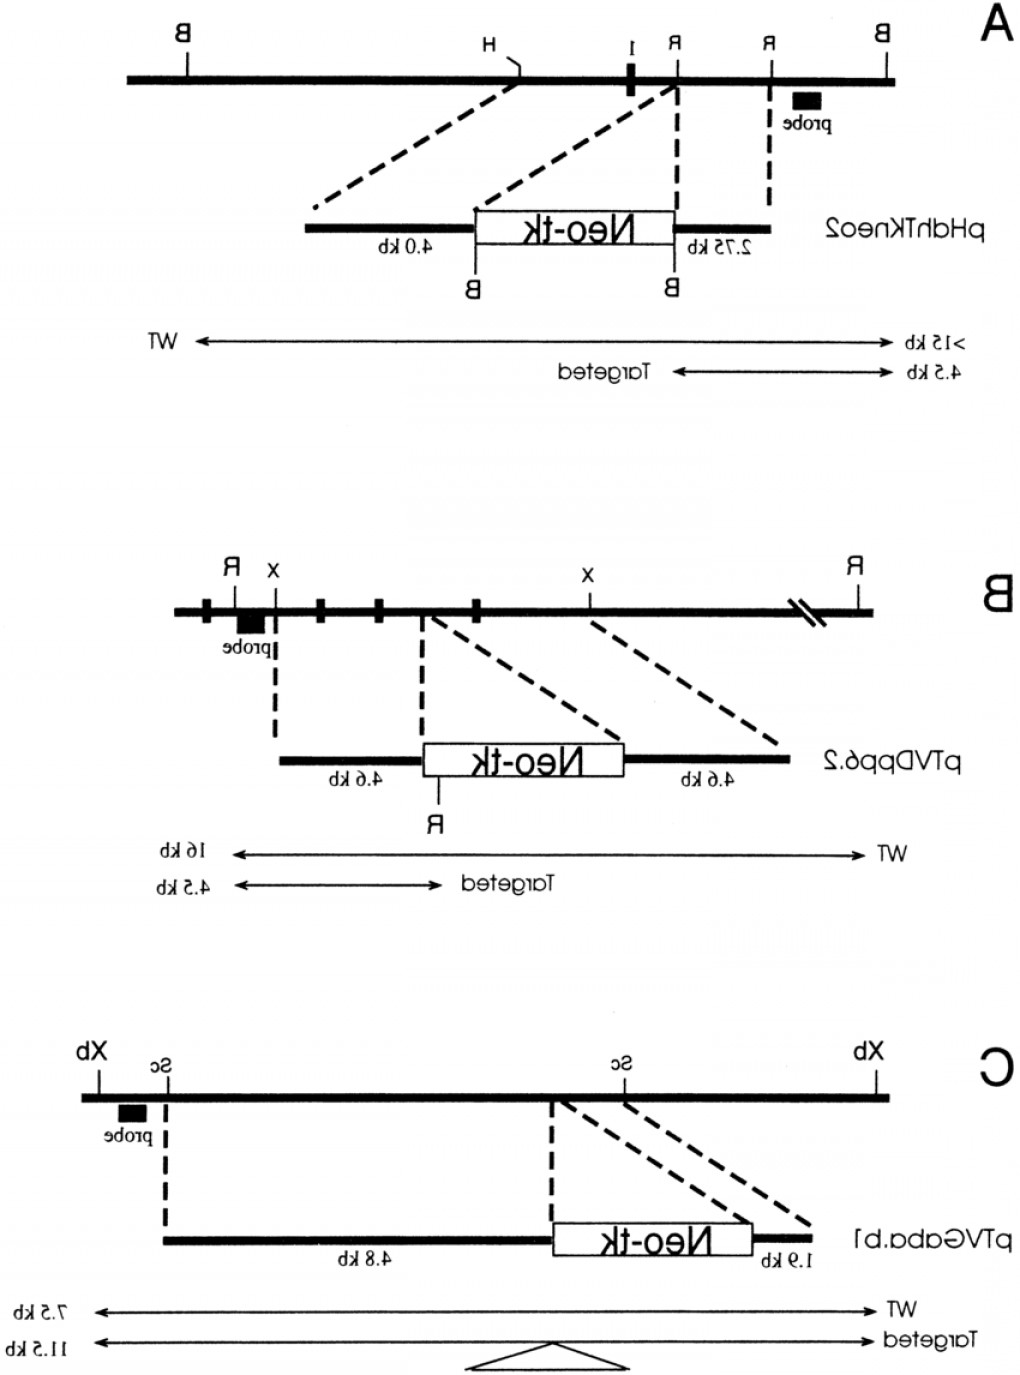 1-1 Vector: Targeting Vectors A Hdh Targeting Vector Transcriptional Orientation Of The Gene Isfig